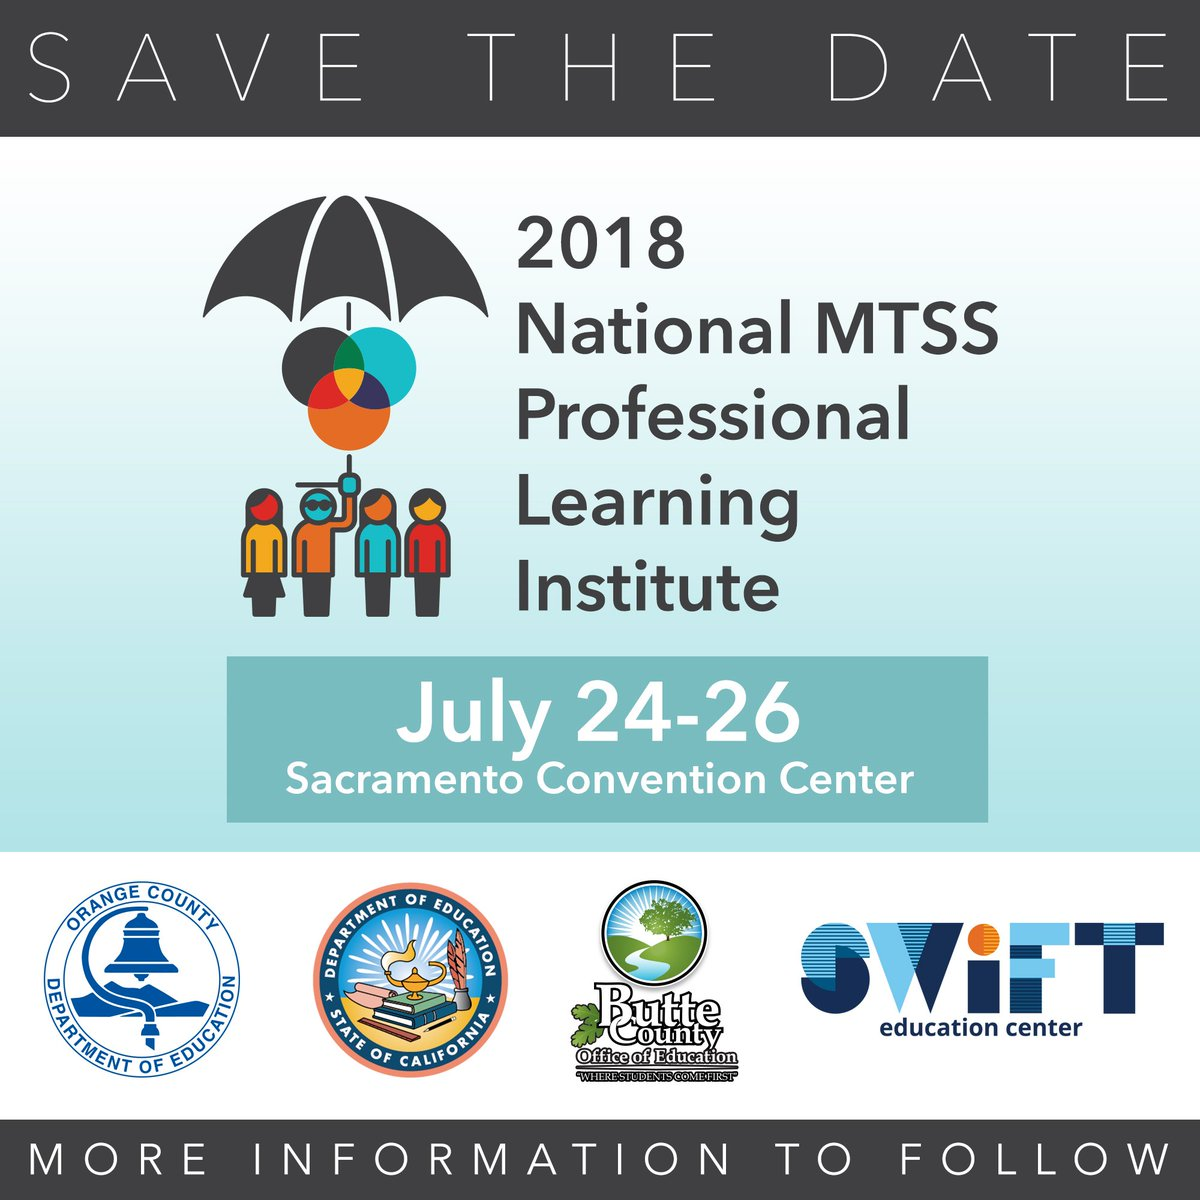 Save the date for the 2018 National MTSS Professional Learning Institute in Sacramento, CA: July 24-26.